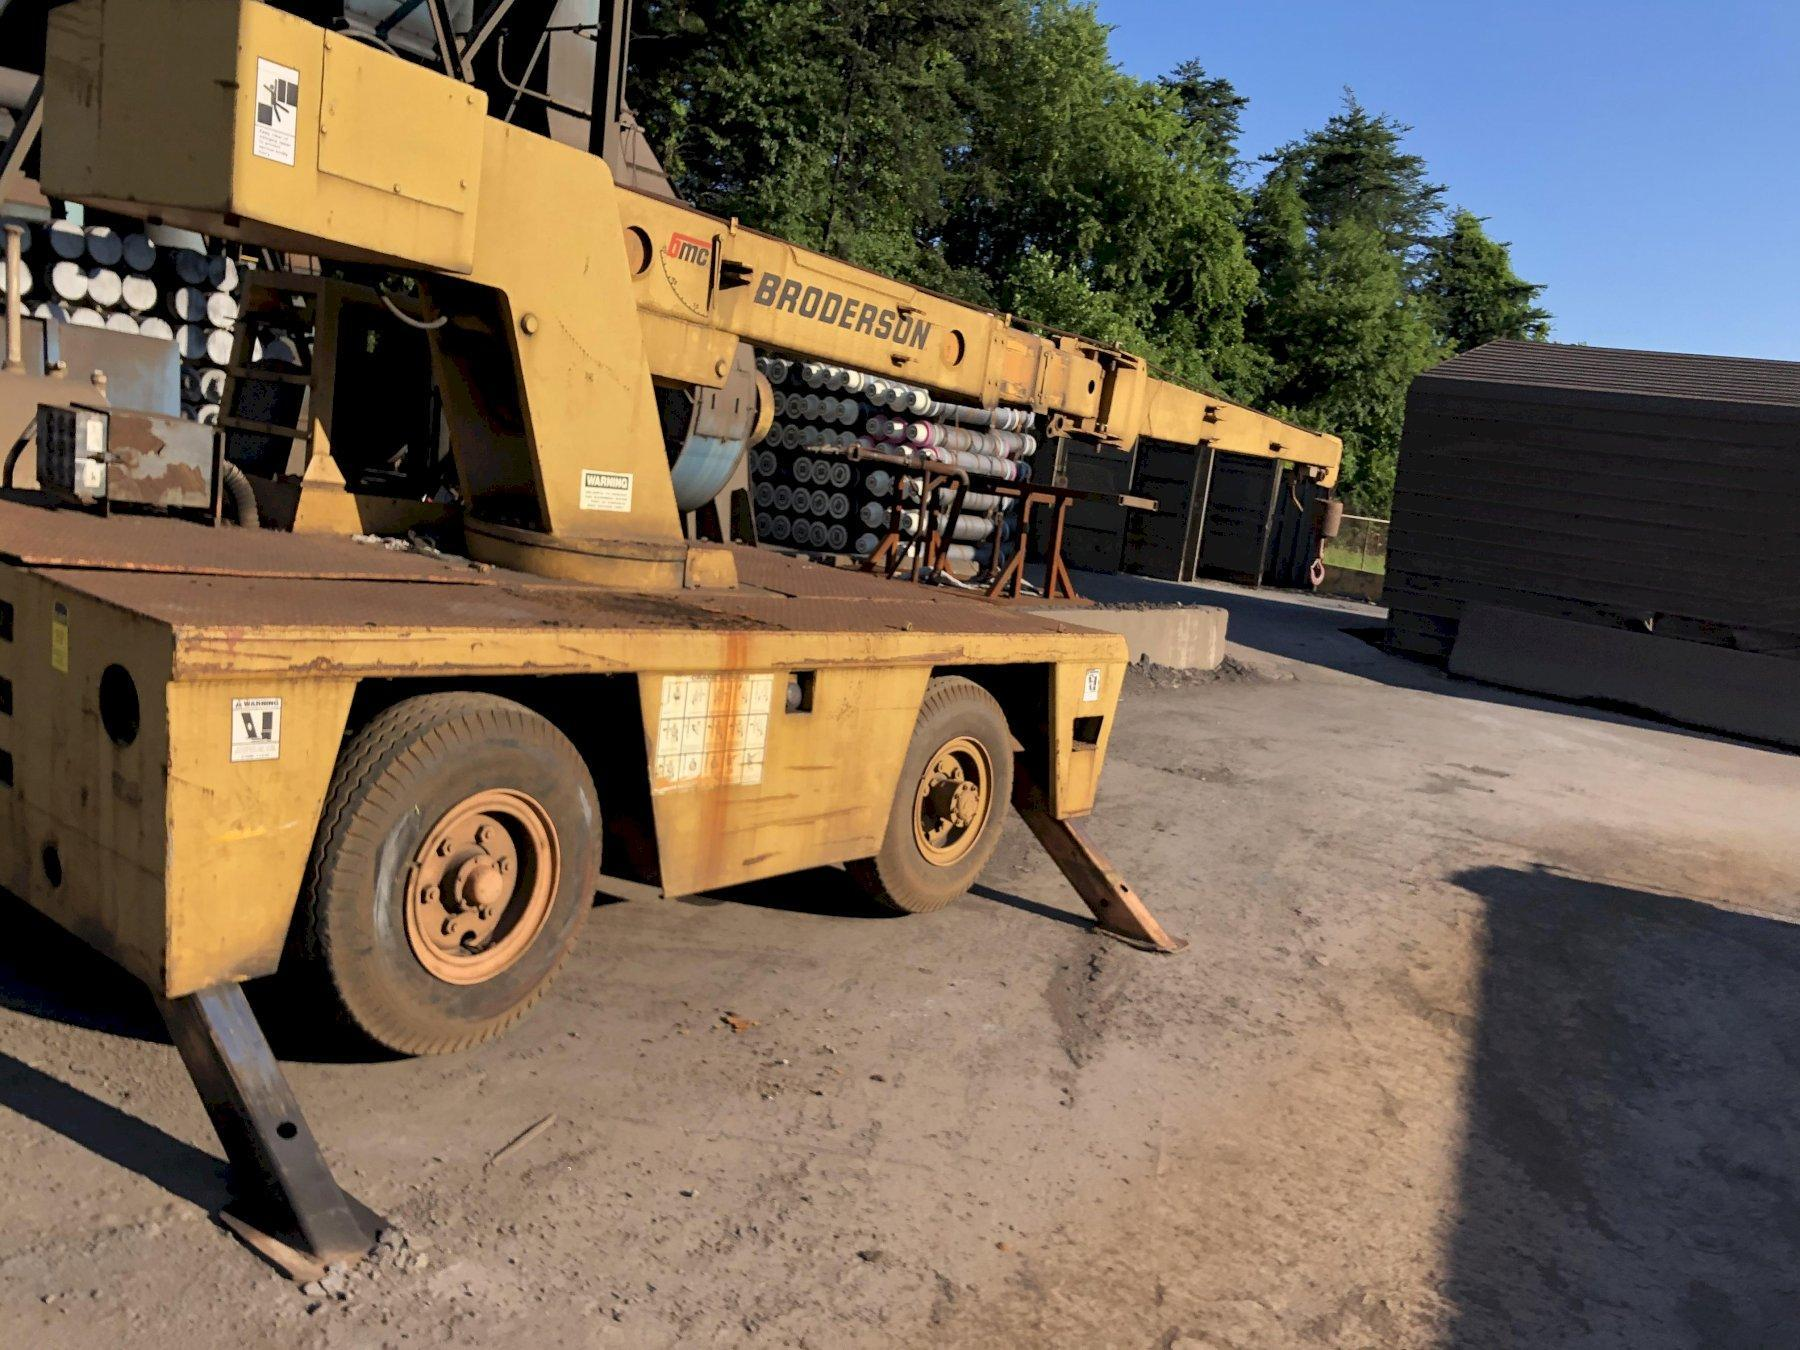 Broderson model 1c801b Mobile Crane s/n 867b with power outboard supports